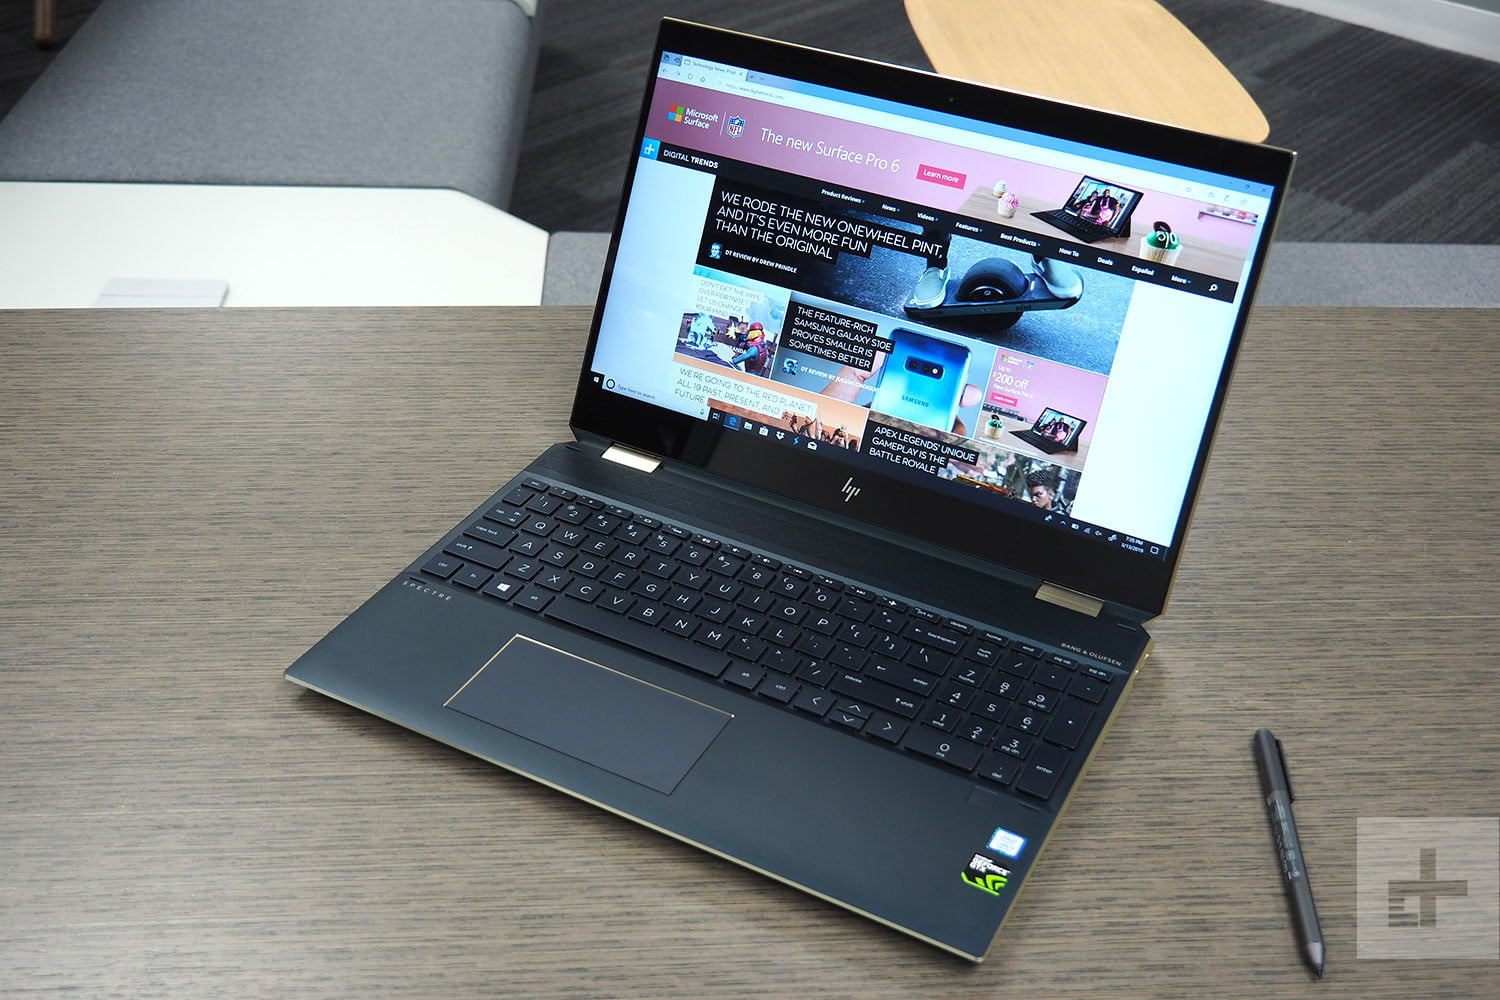 Hp Spectre X360 Review 2020.Dell Xps 15 Vs Hp Spectre X360 15 The Ultimate Creative